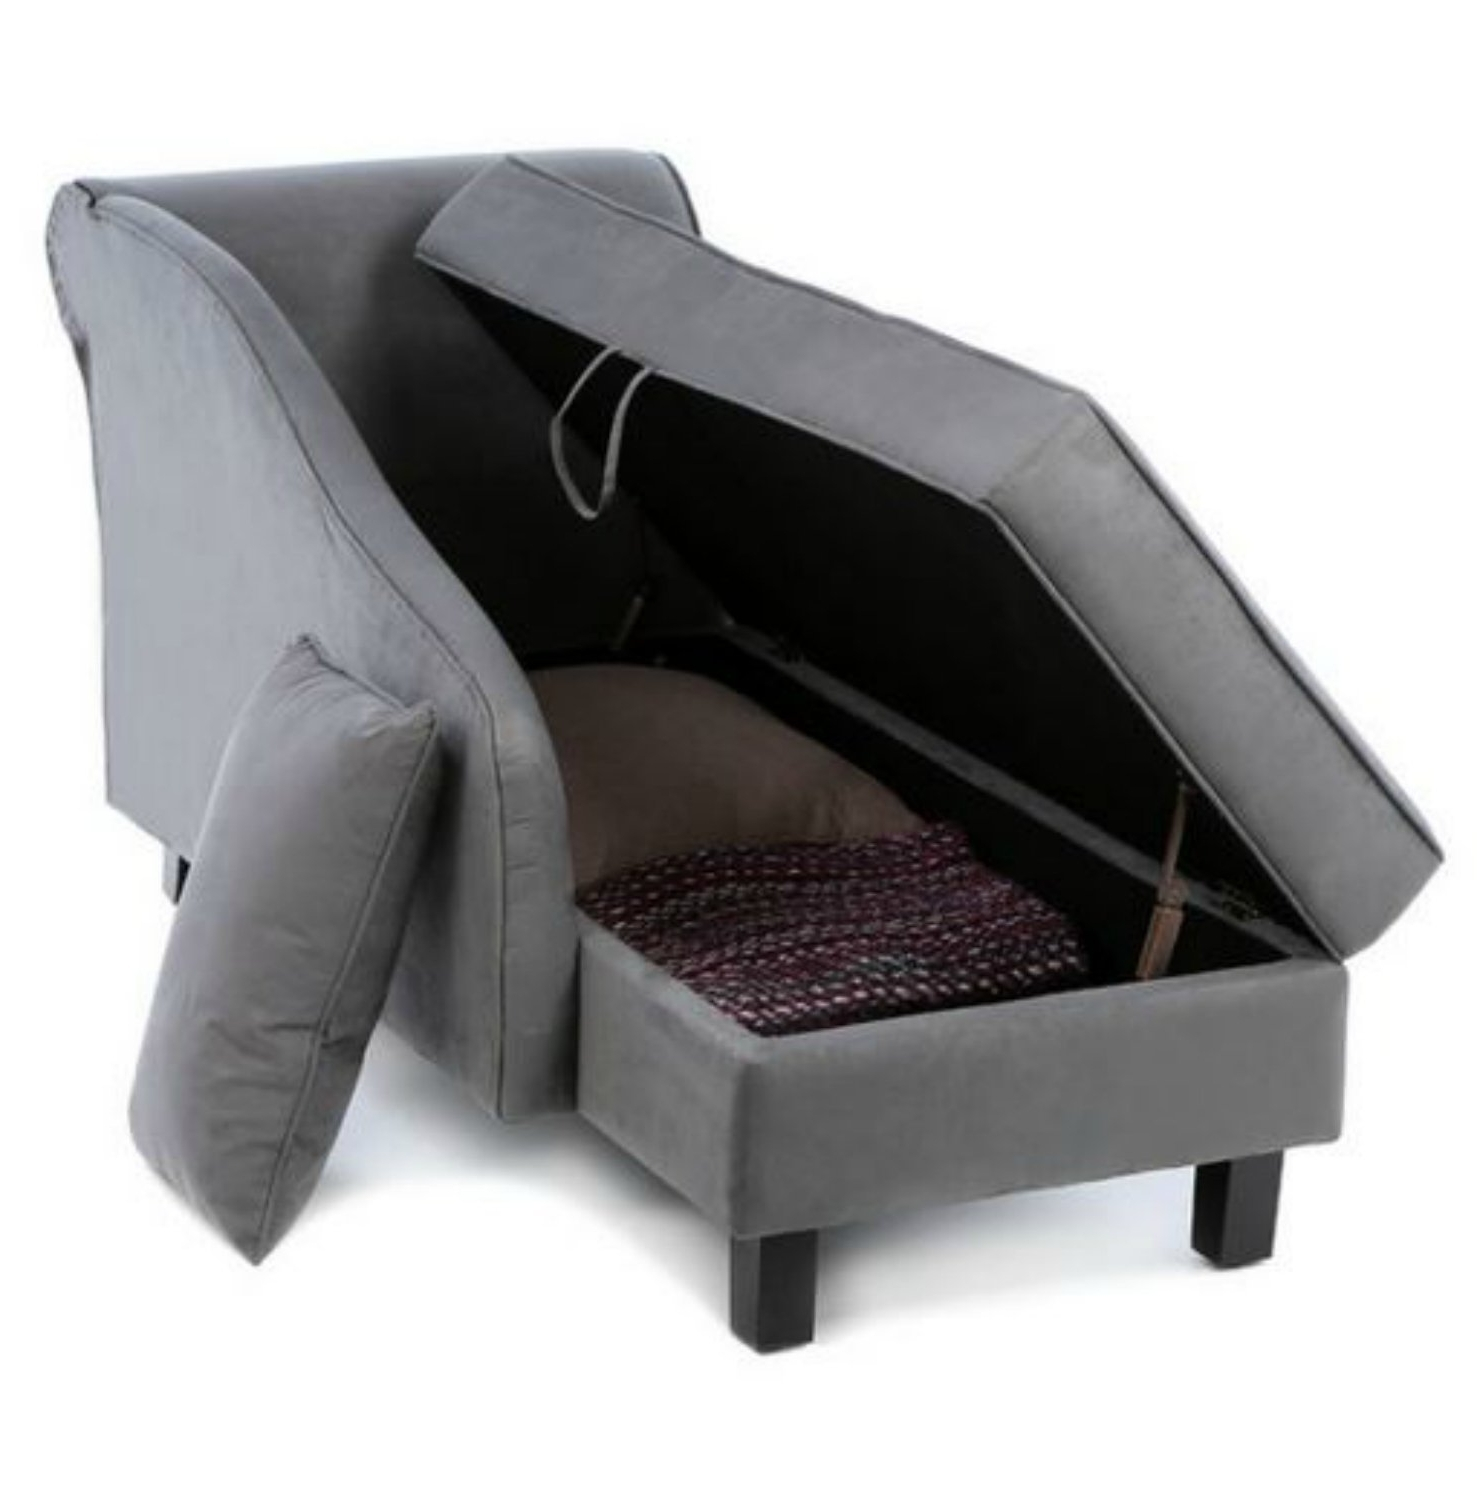 Widely Used Amazon: Storage Chaise Lounge Chair  This Microfiber In Grey Chaise Lounge Chairs (View 15 of 15)